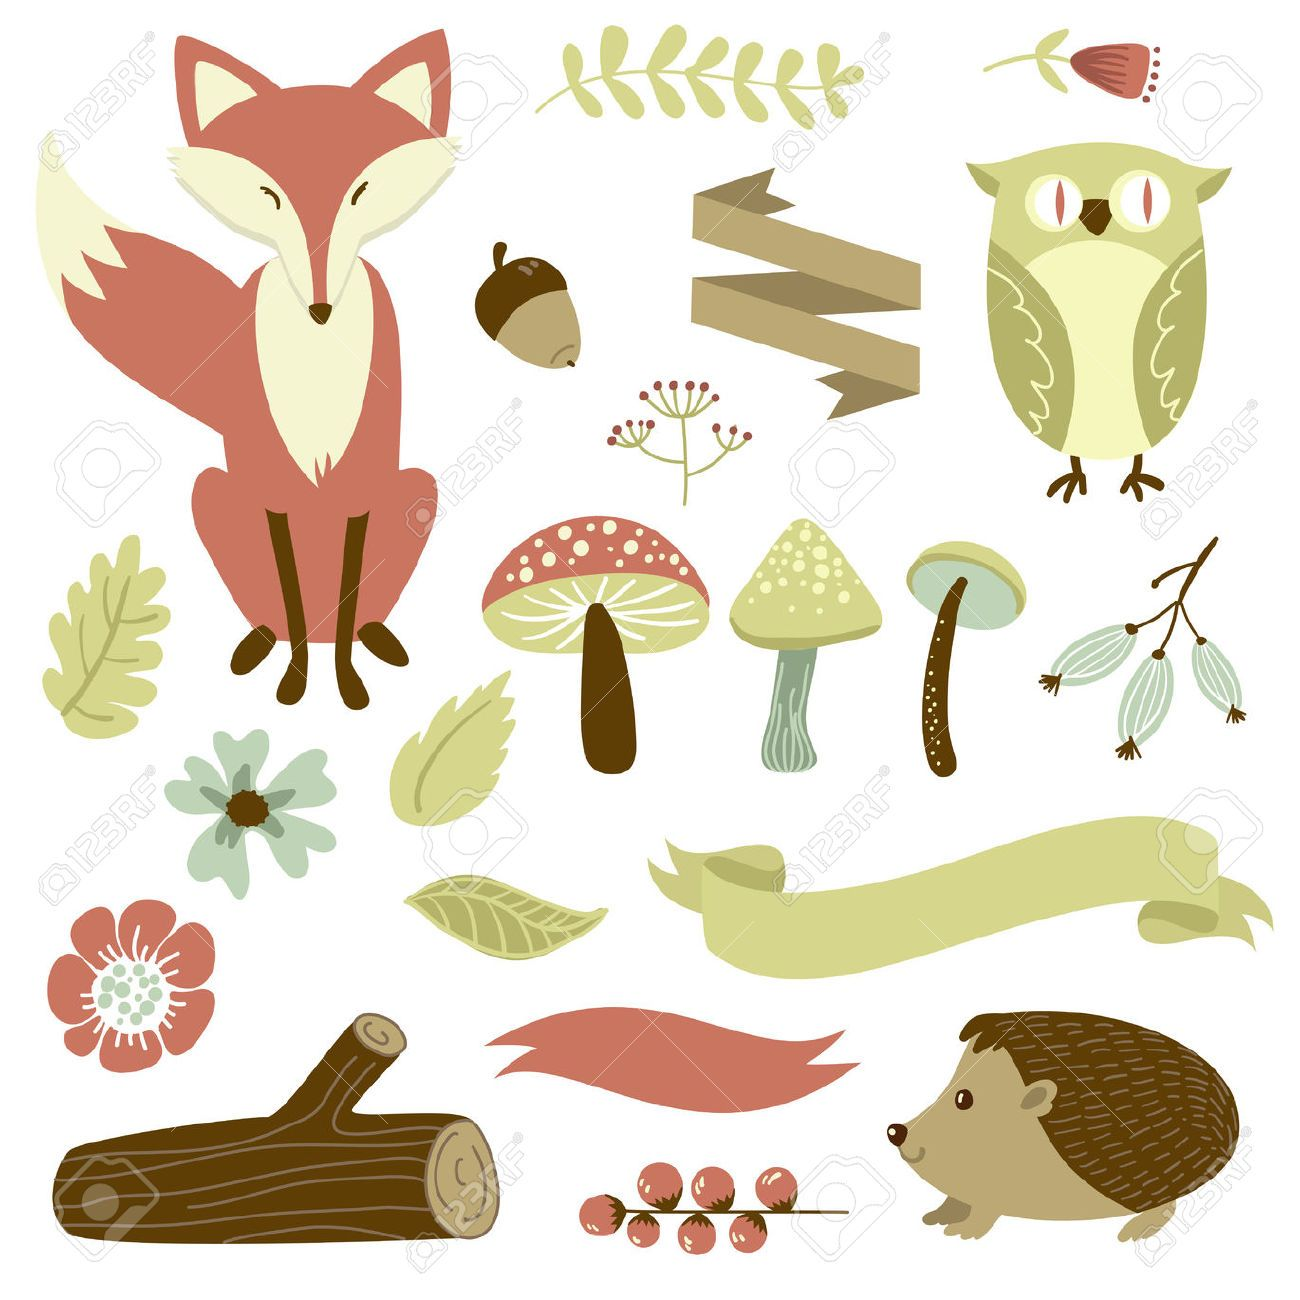 Free Printable Forest Animal Silhouettes